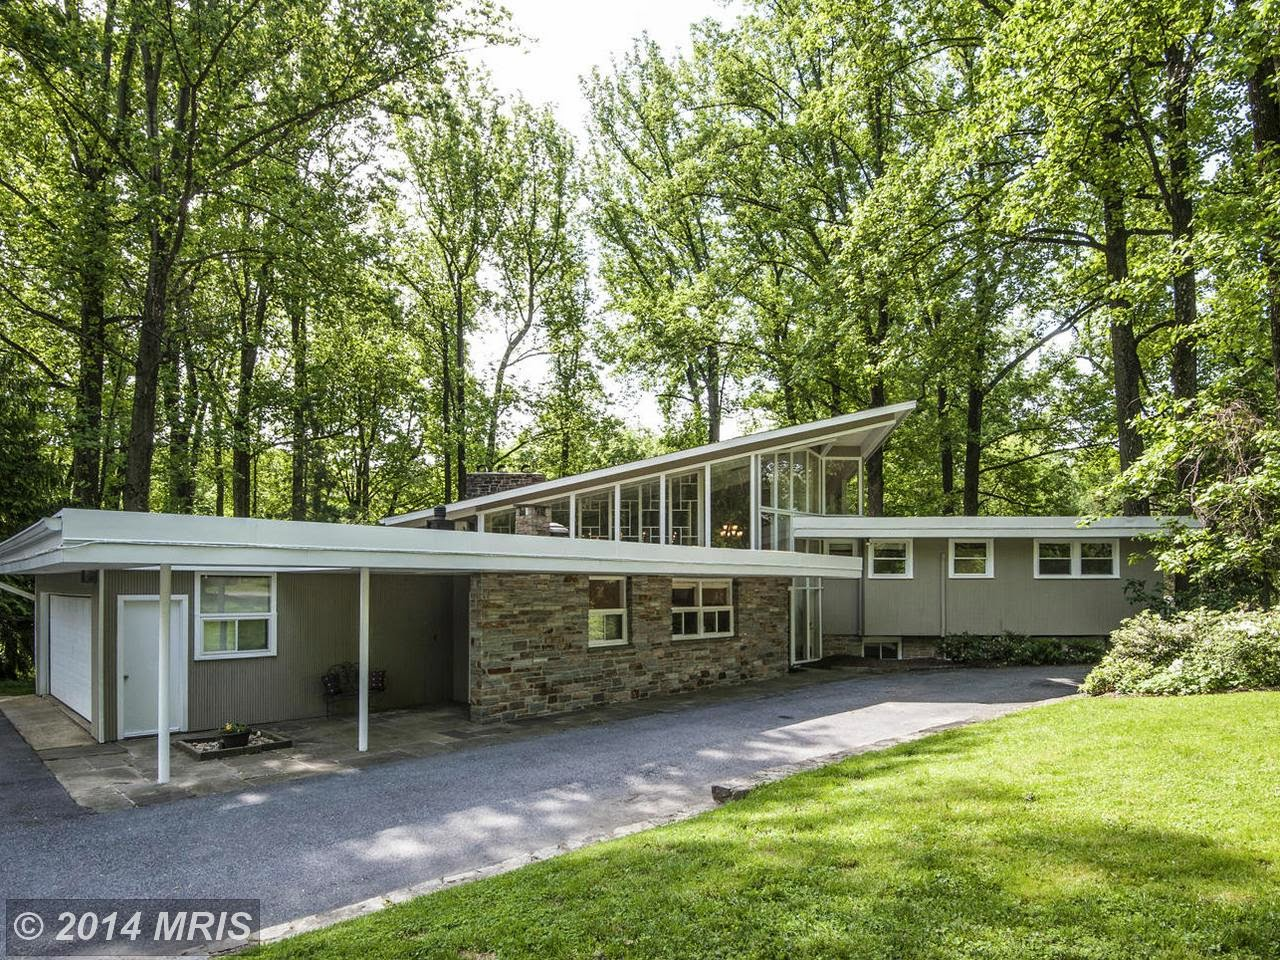 Mid century modern homes in nashville - Home decor ideas